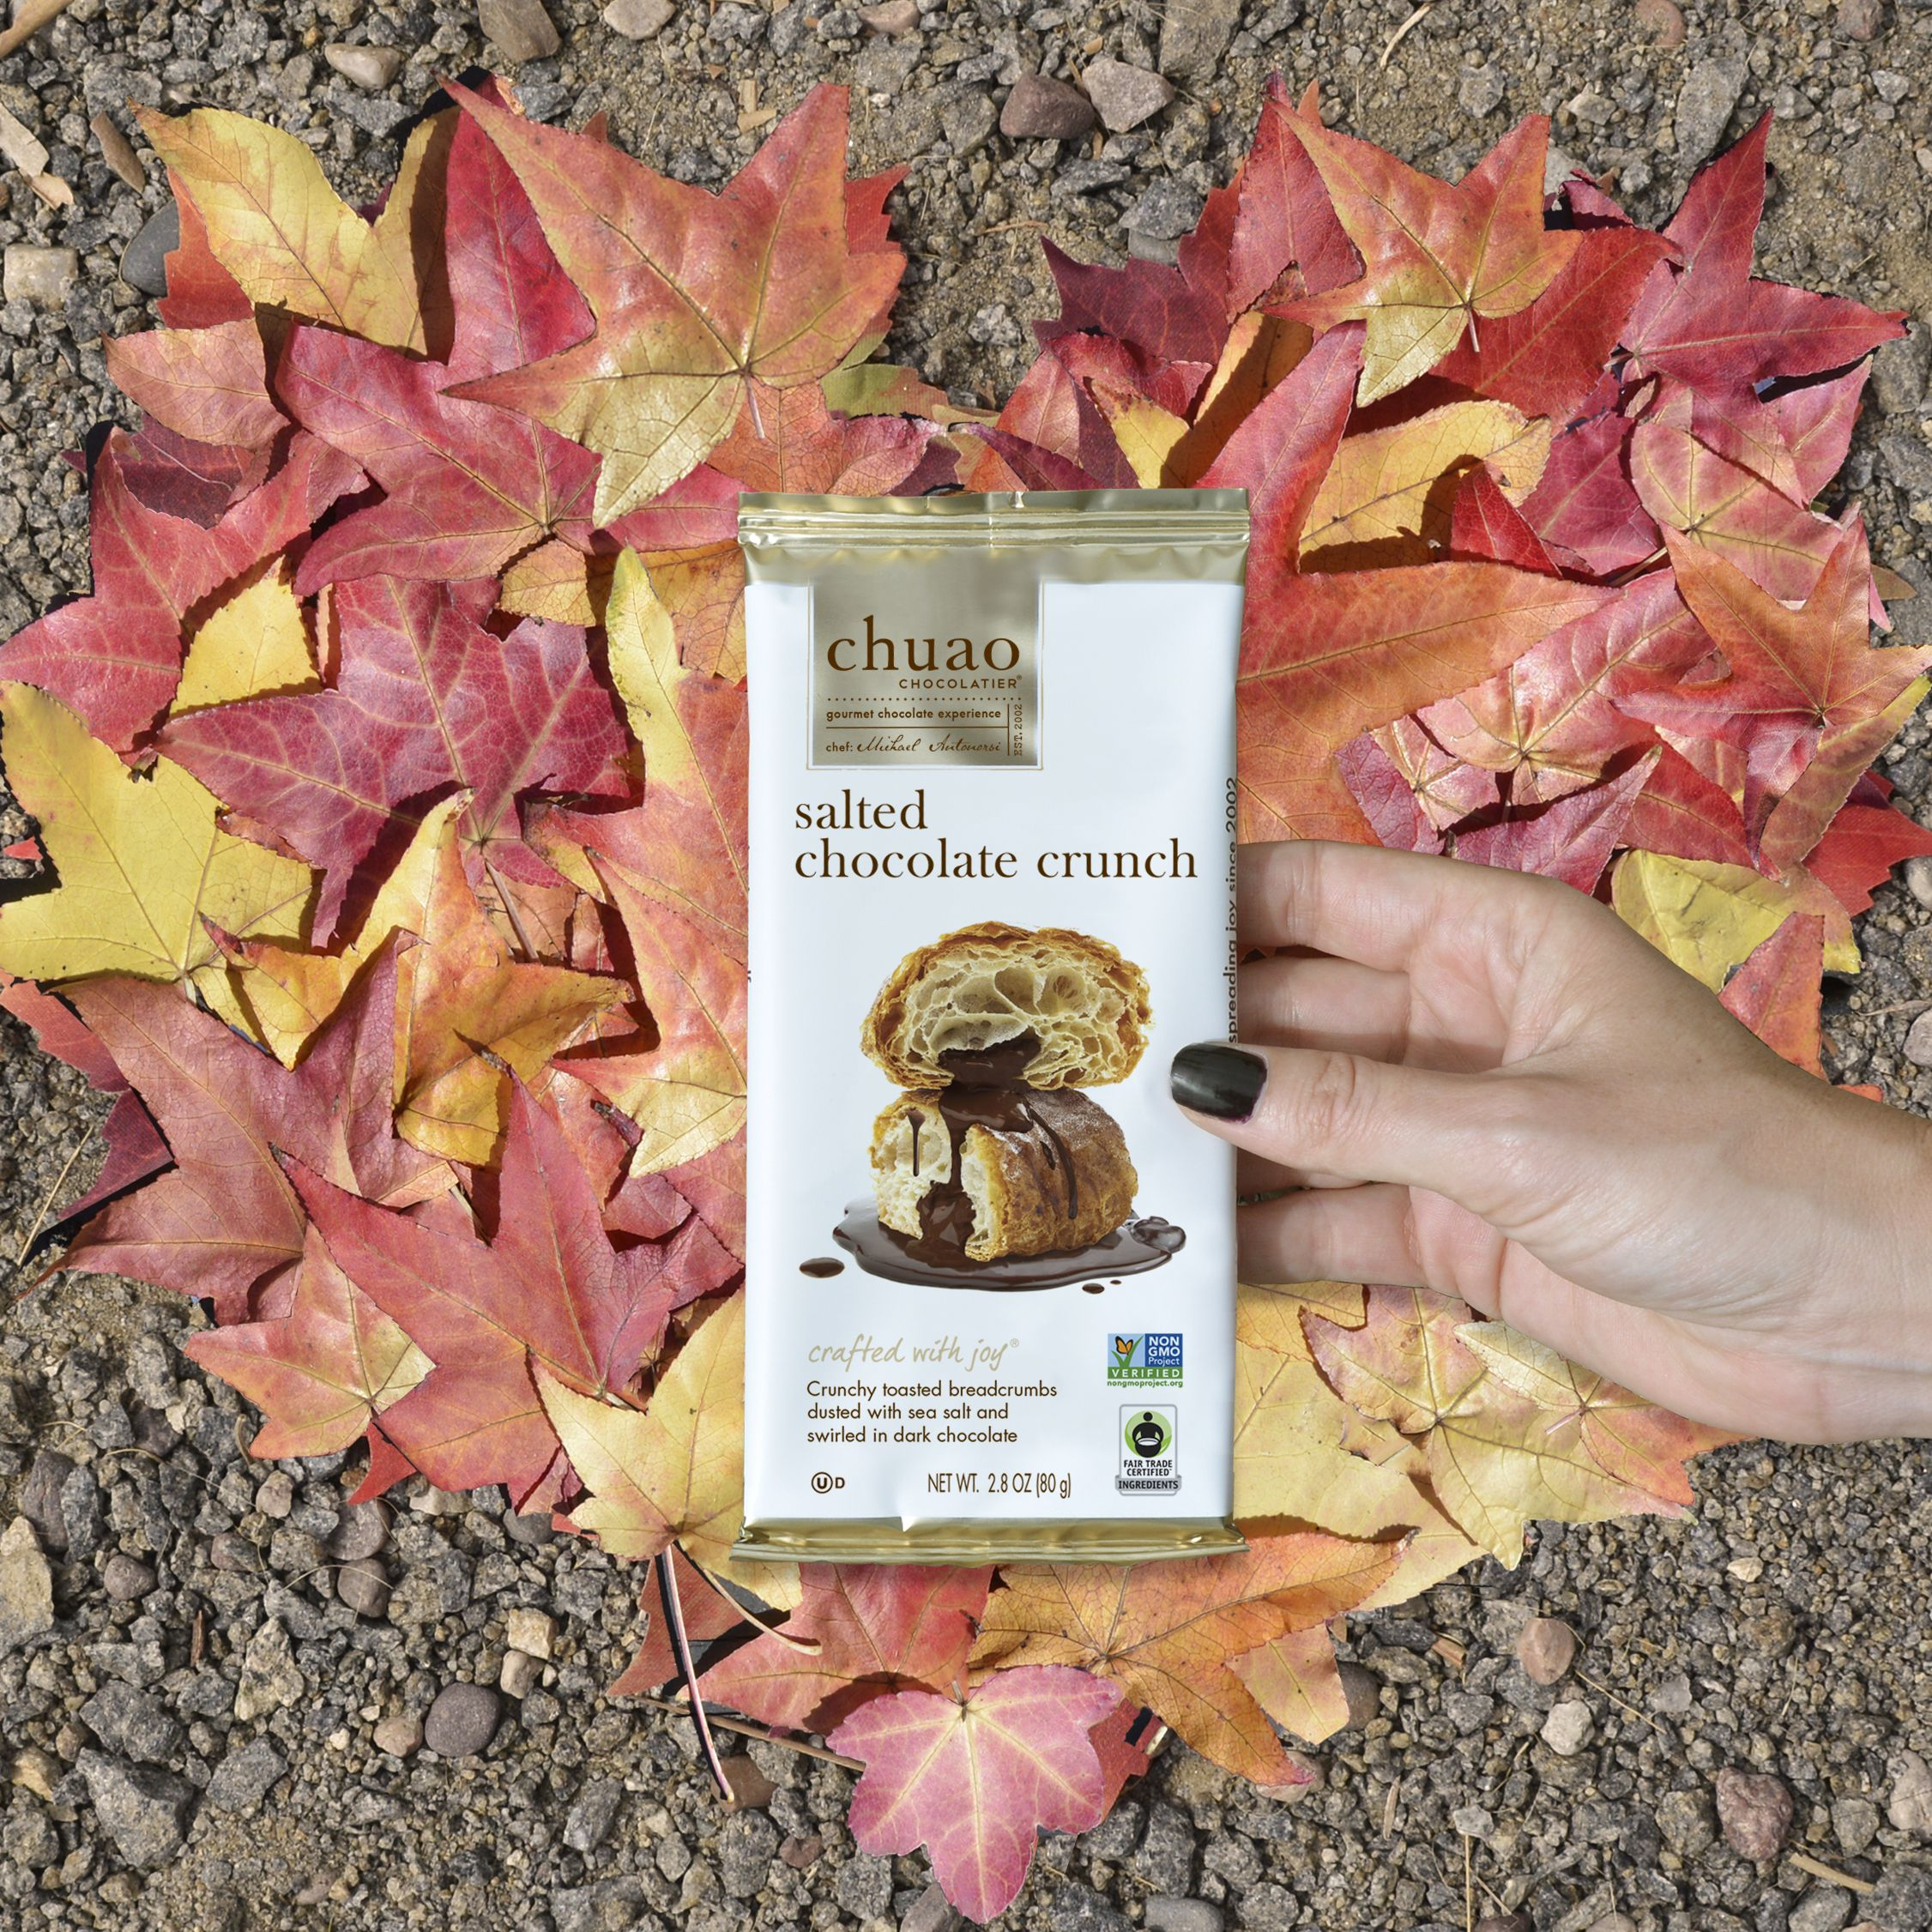 crunchy leaves, crunchy treats 🍁🍫 crunchy, toasted breadcrumbs dusted with sea salt and swirled in dark chocolate.